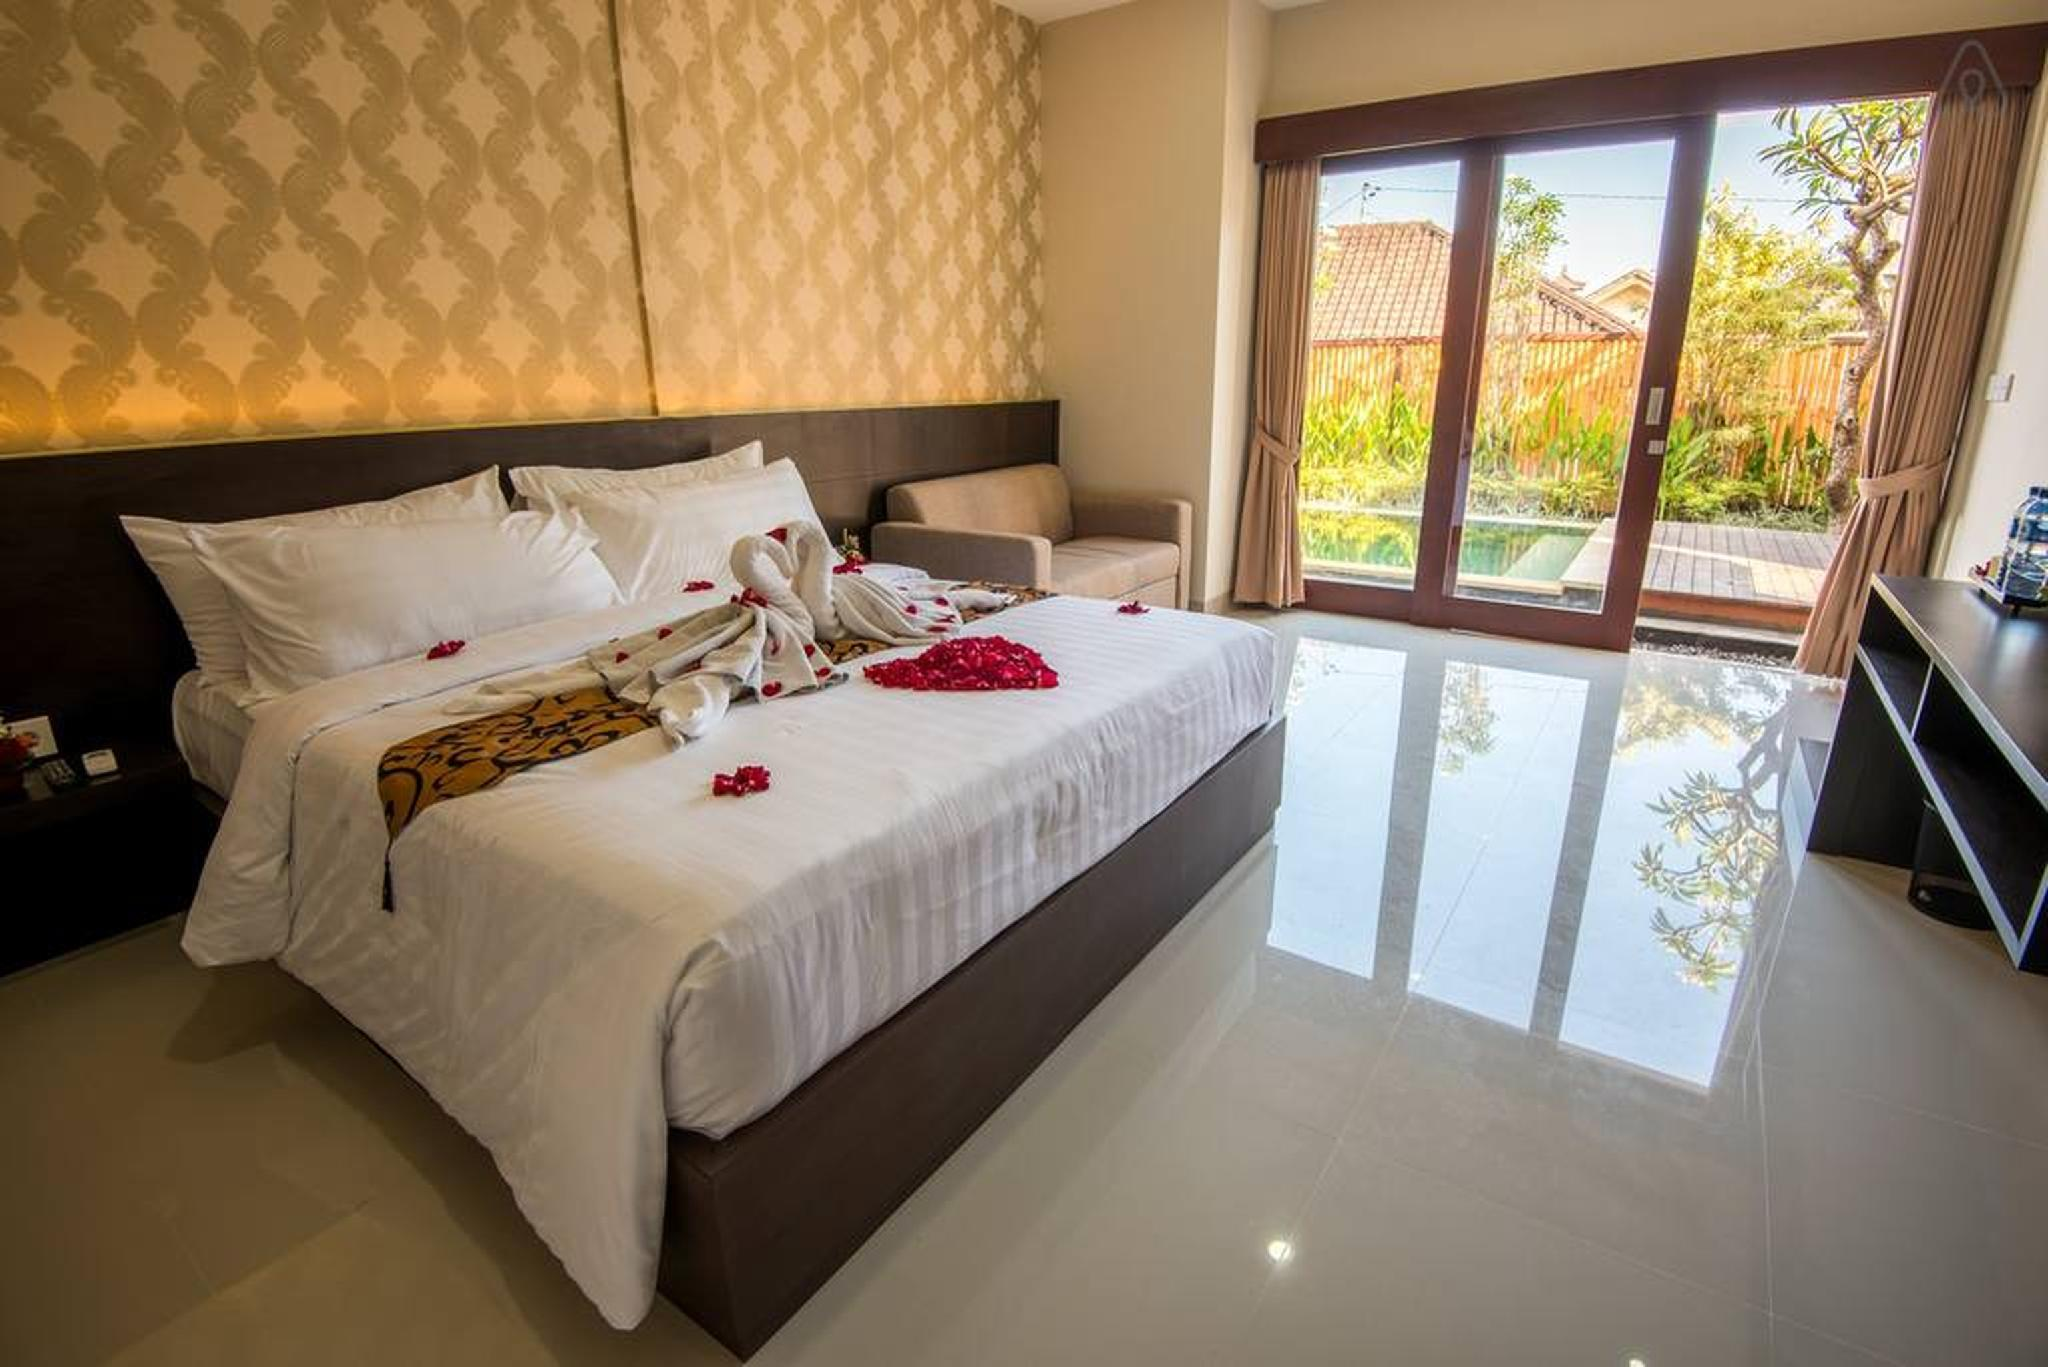 #3 Cozy stay in Bisma Suite - Beach Nearby!